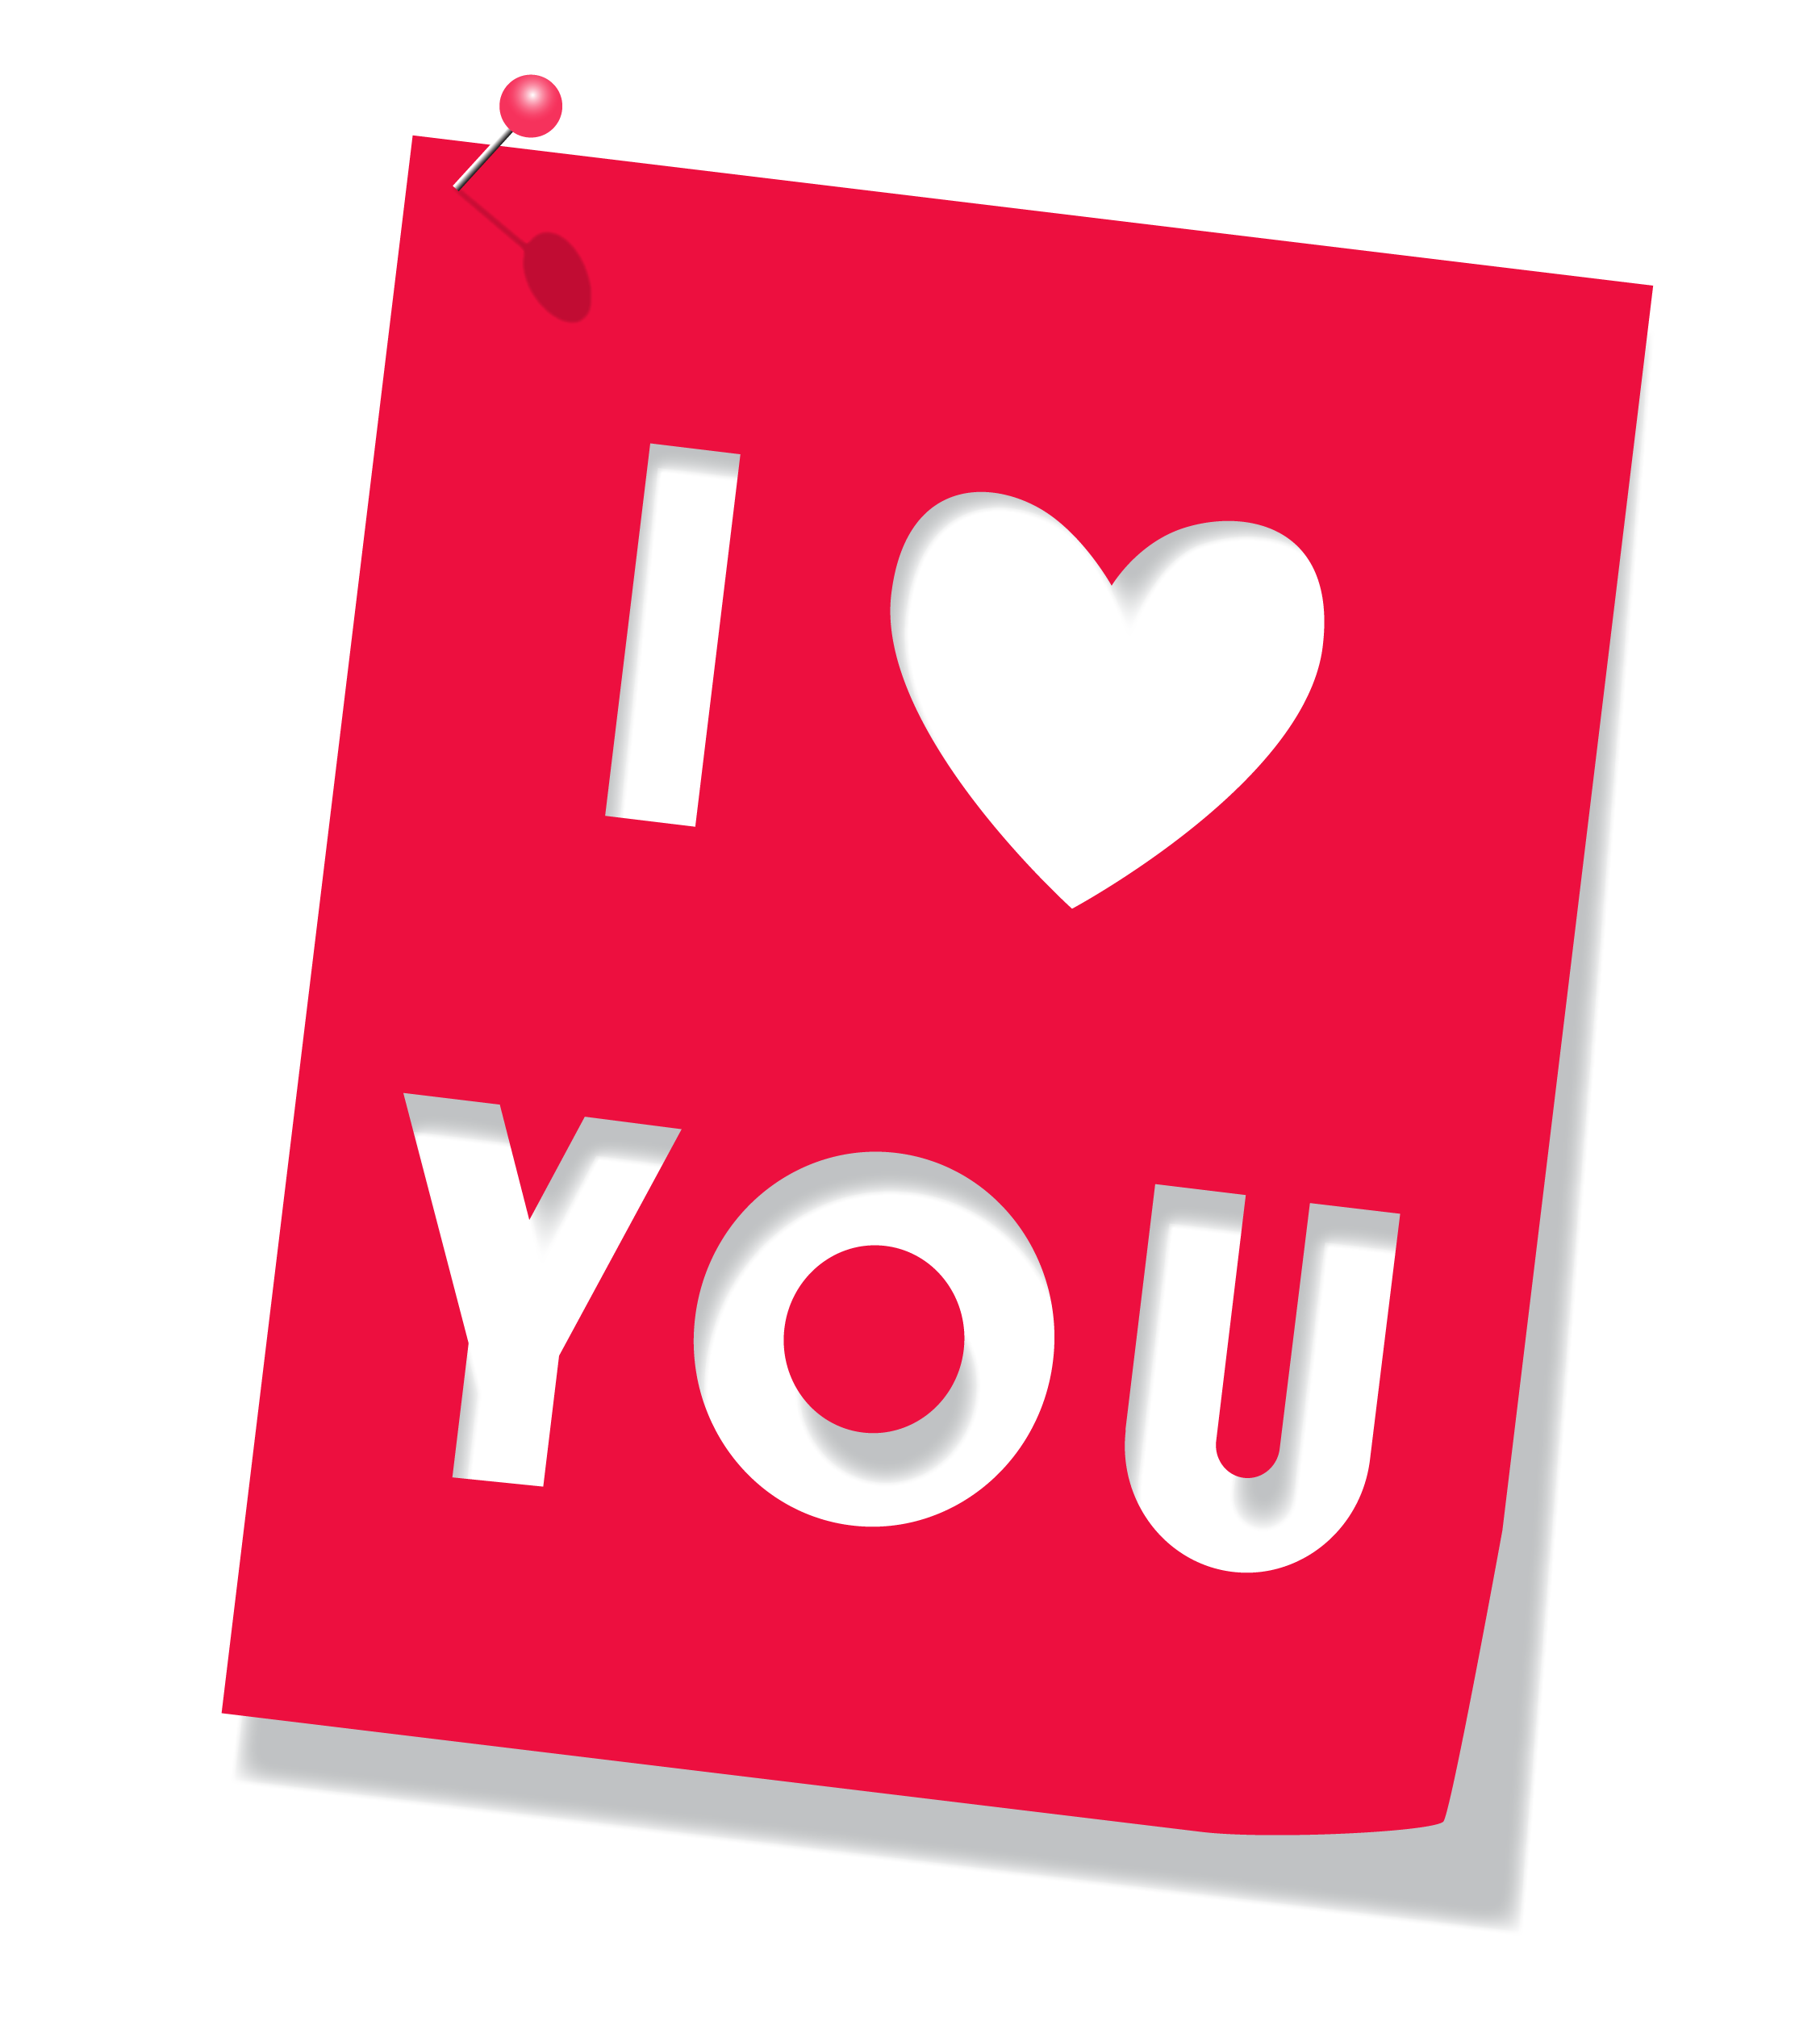 love you png transparent images png only #25787